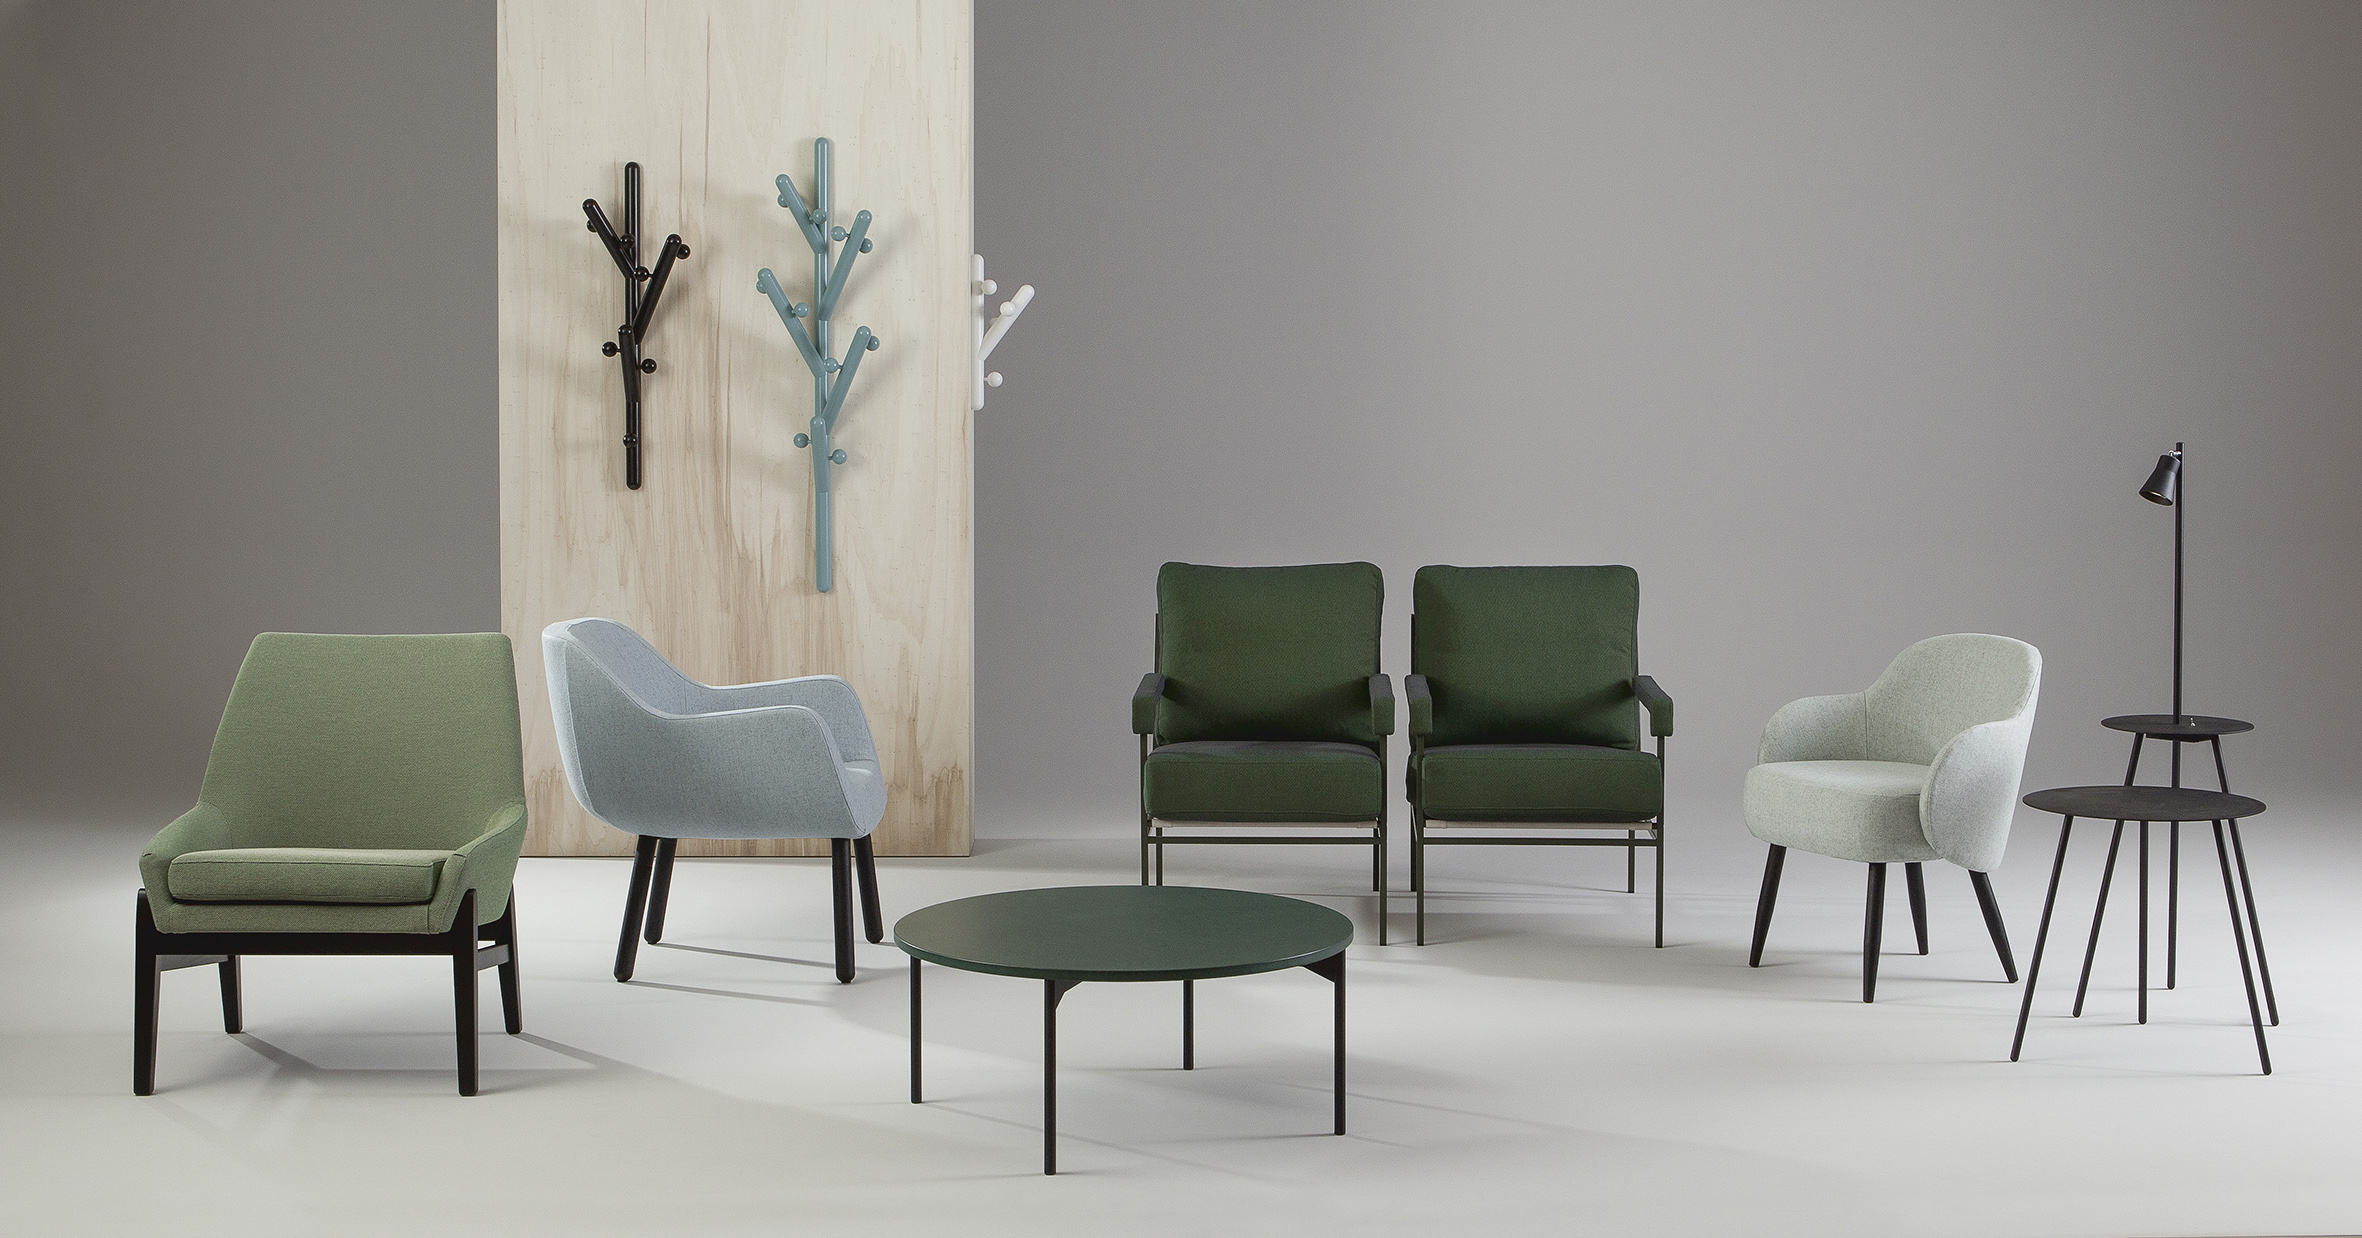 Scandinavian australian furniture designers interstudio for Scandinavian design furniture